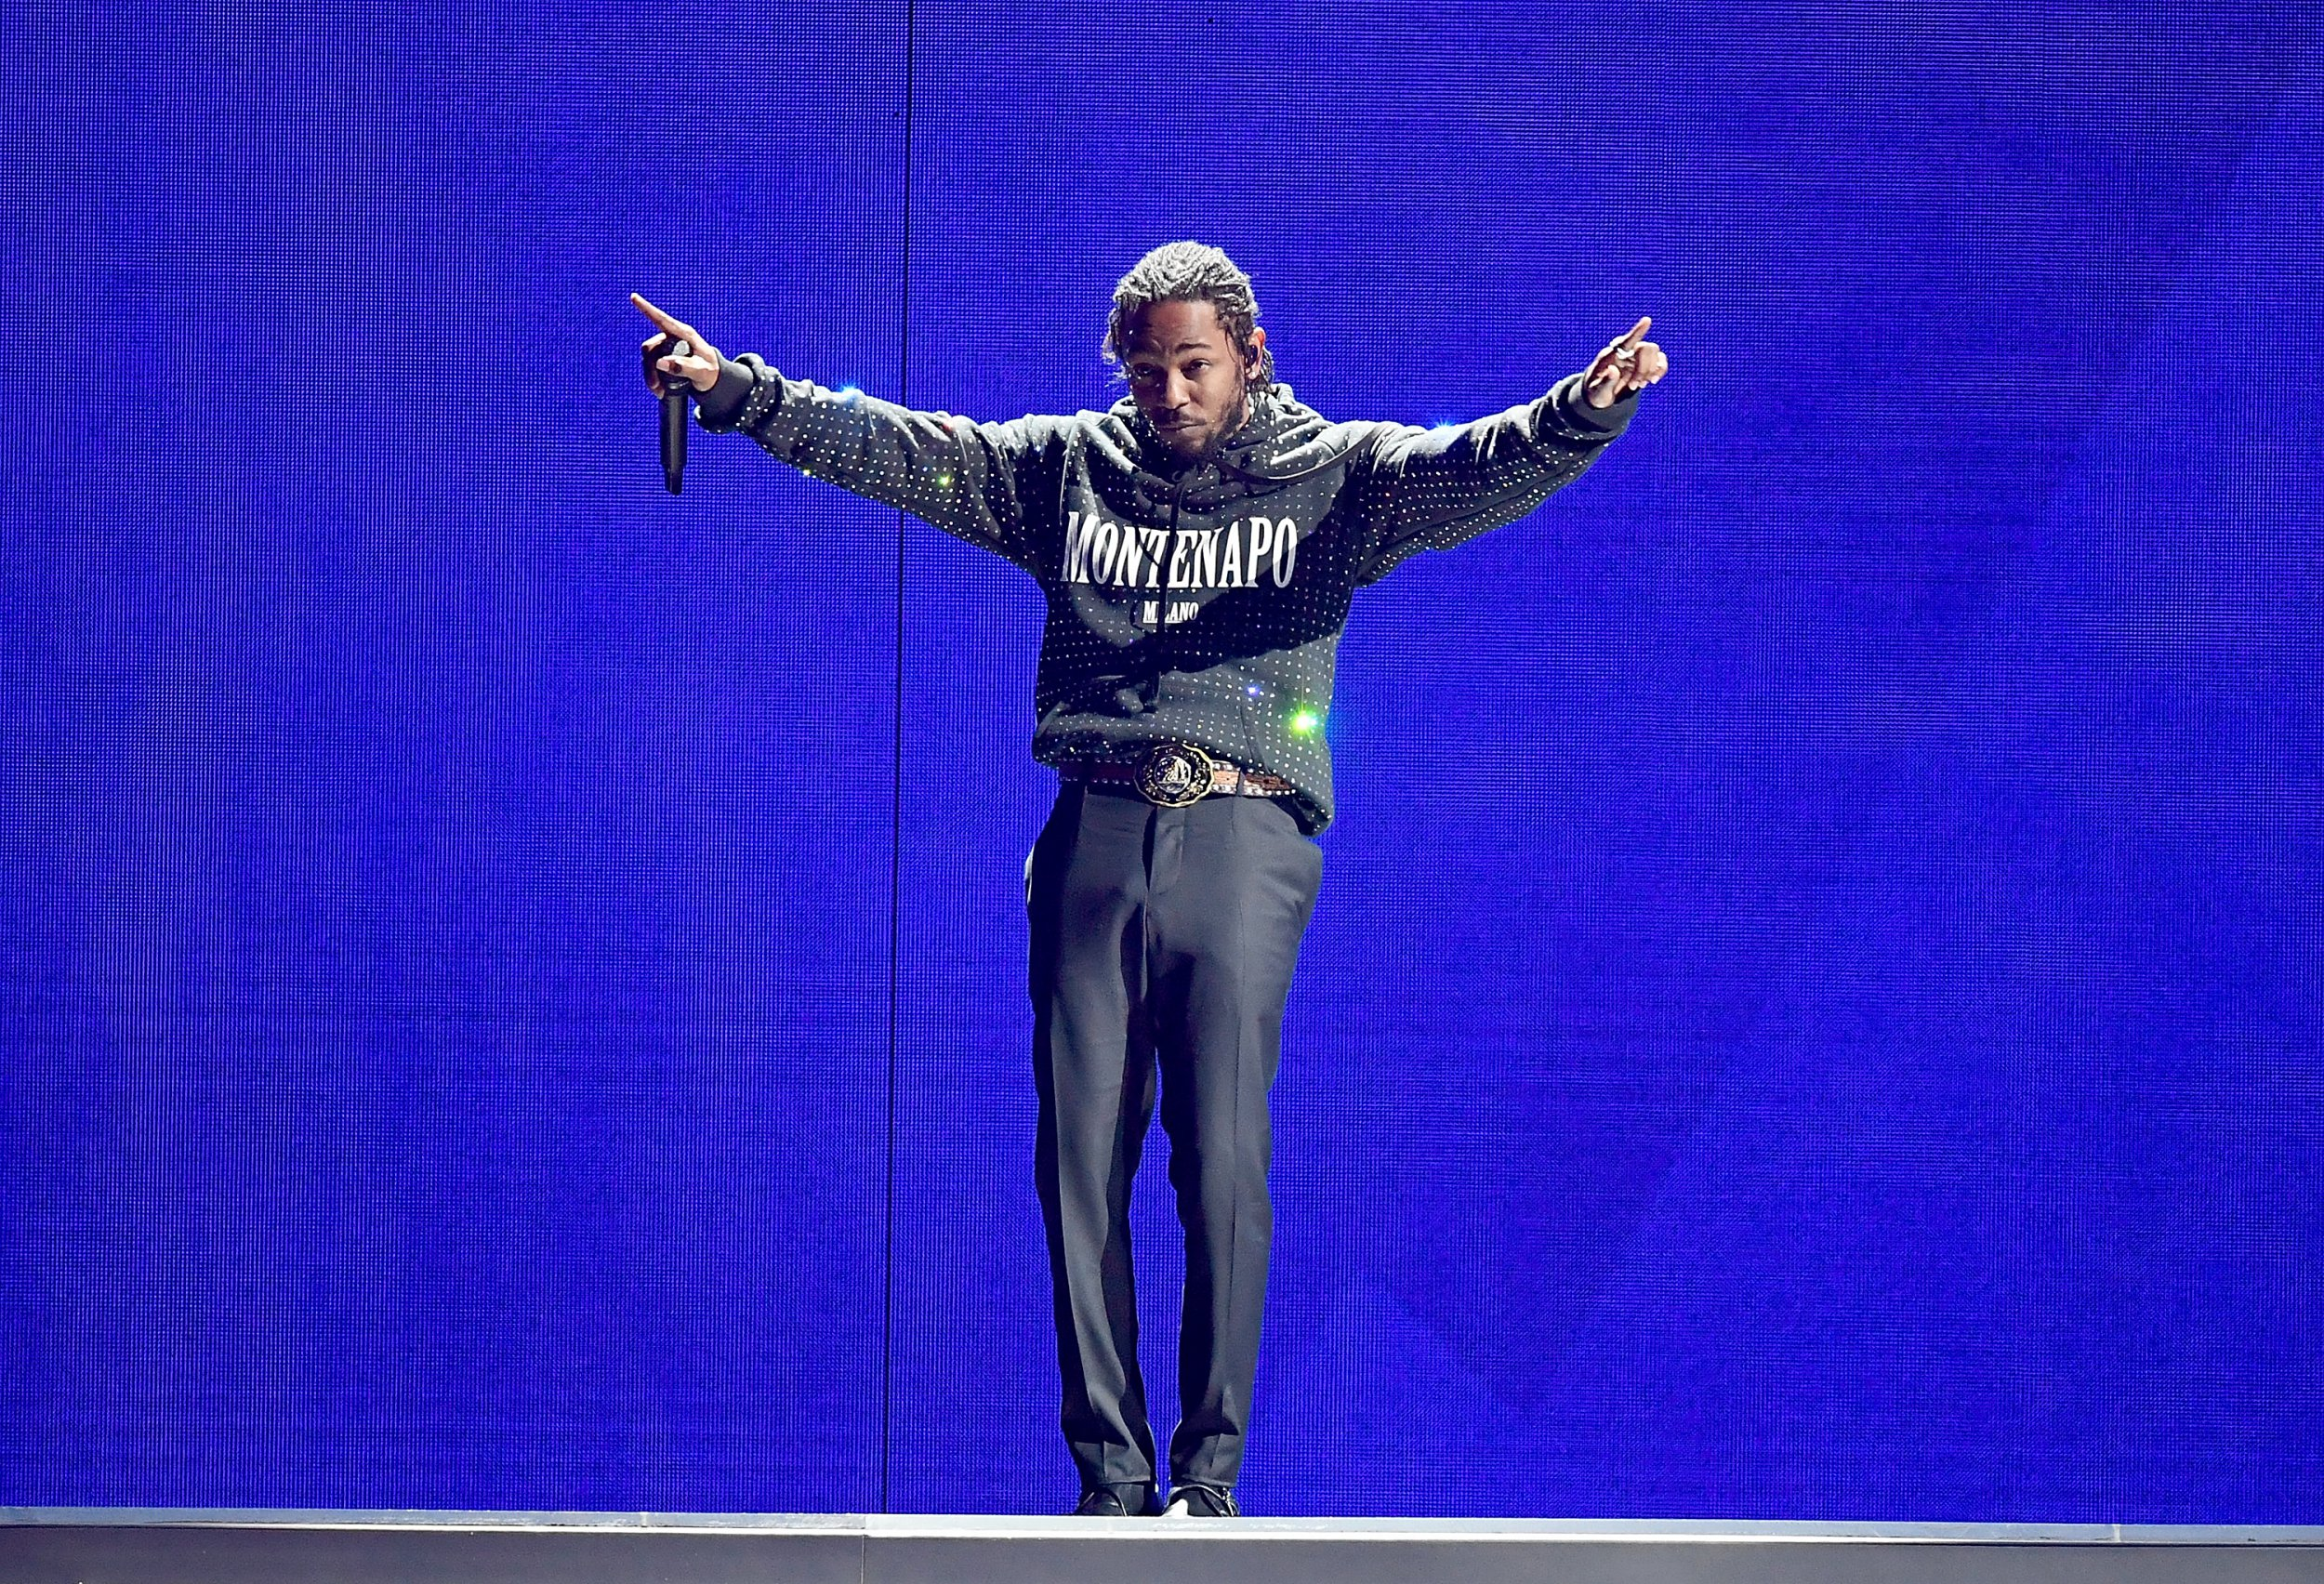 Kendrick Lamar's Brit Awards performance hit with major technical difficulties